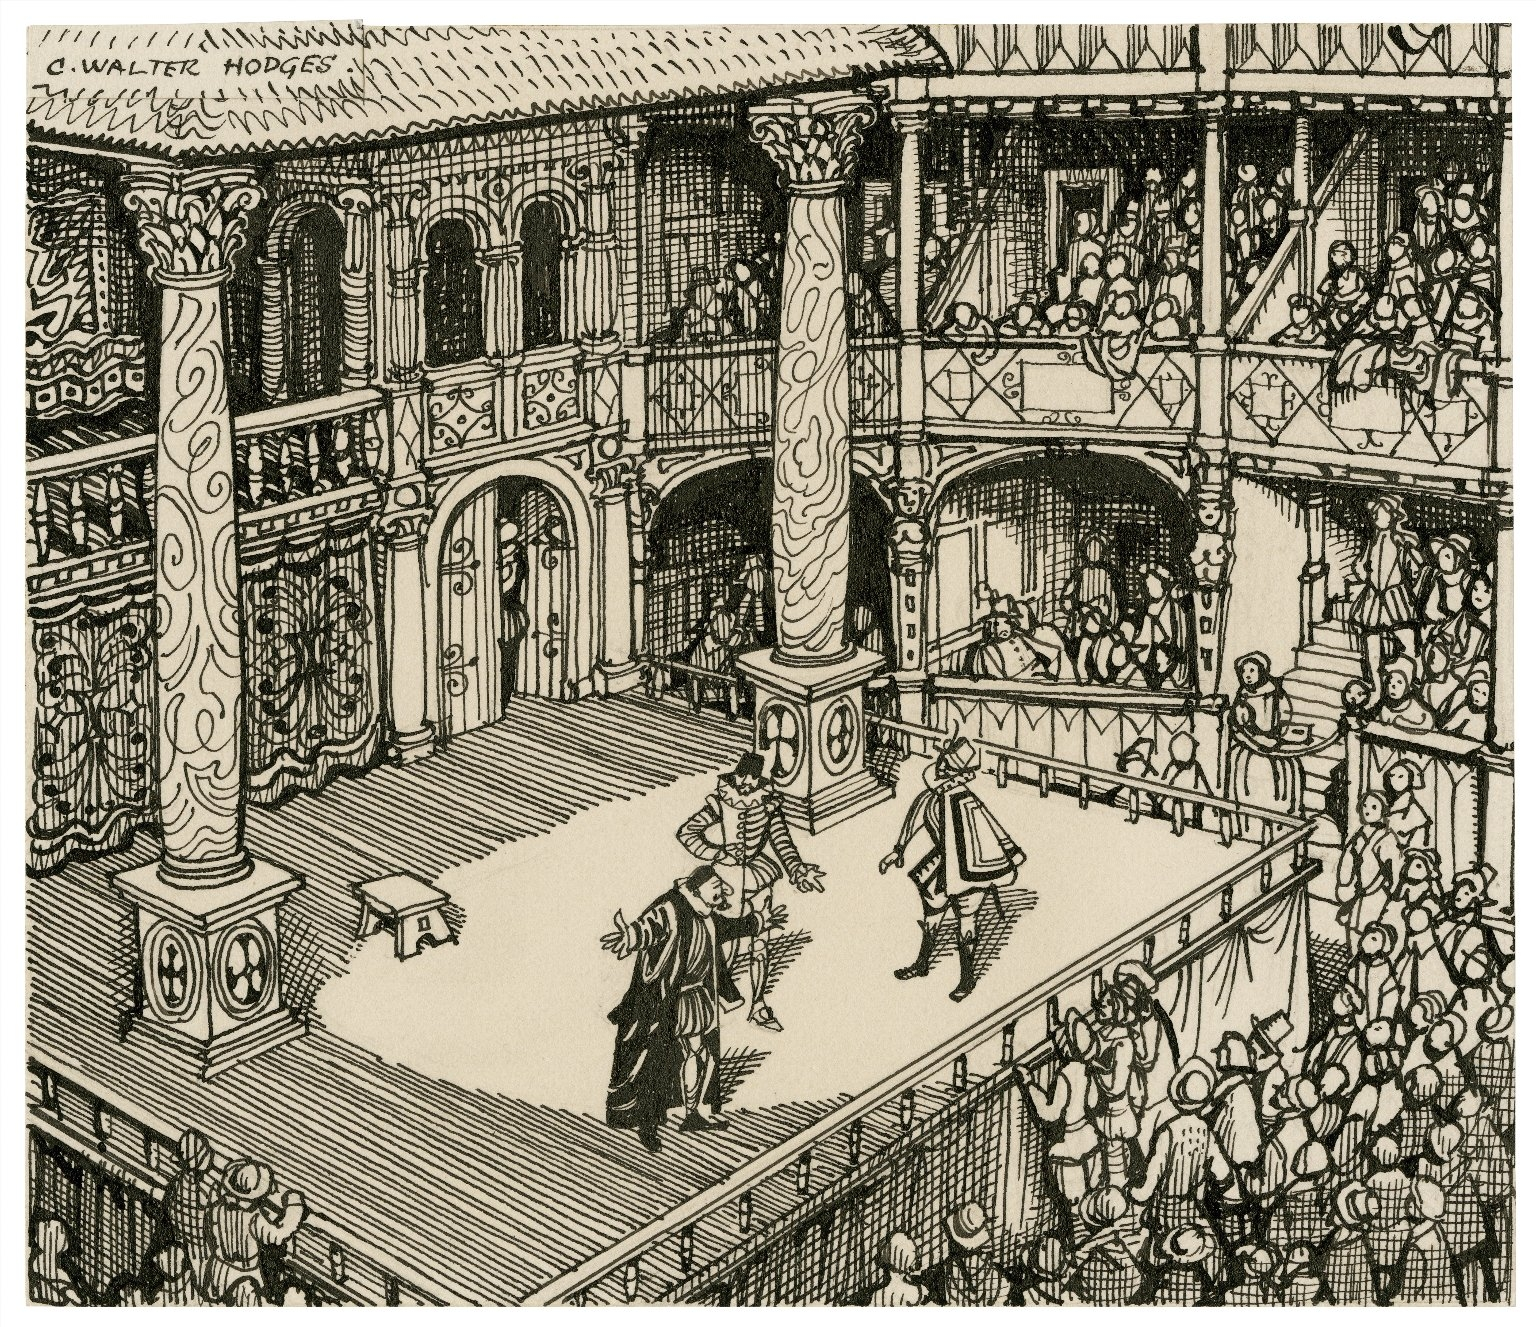 Pen-and-ink drawing of characters on a stage